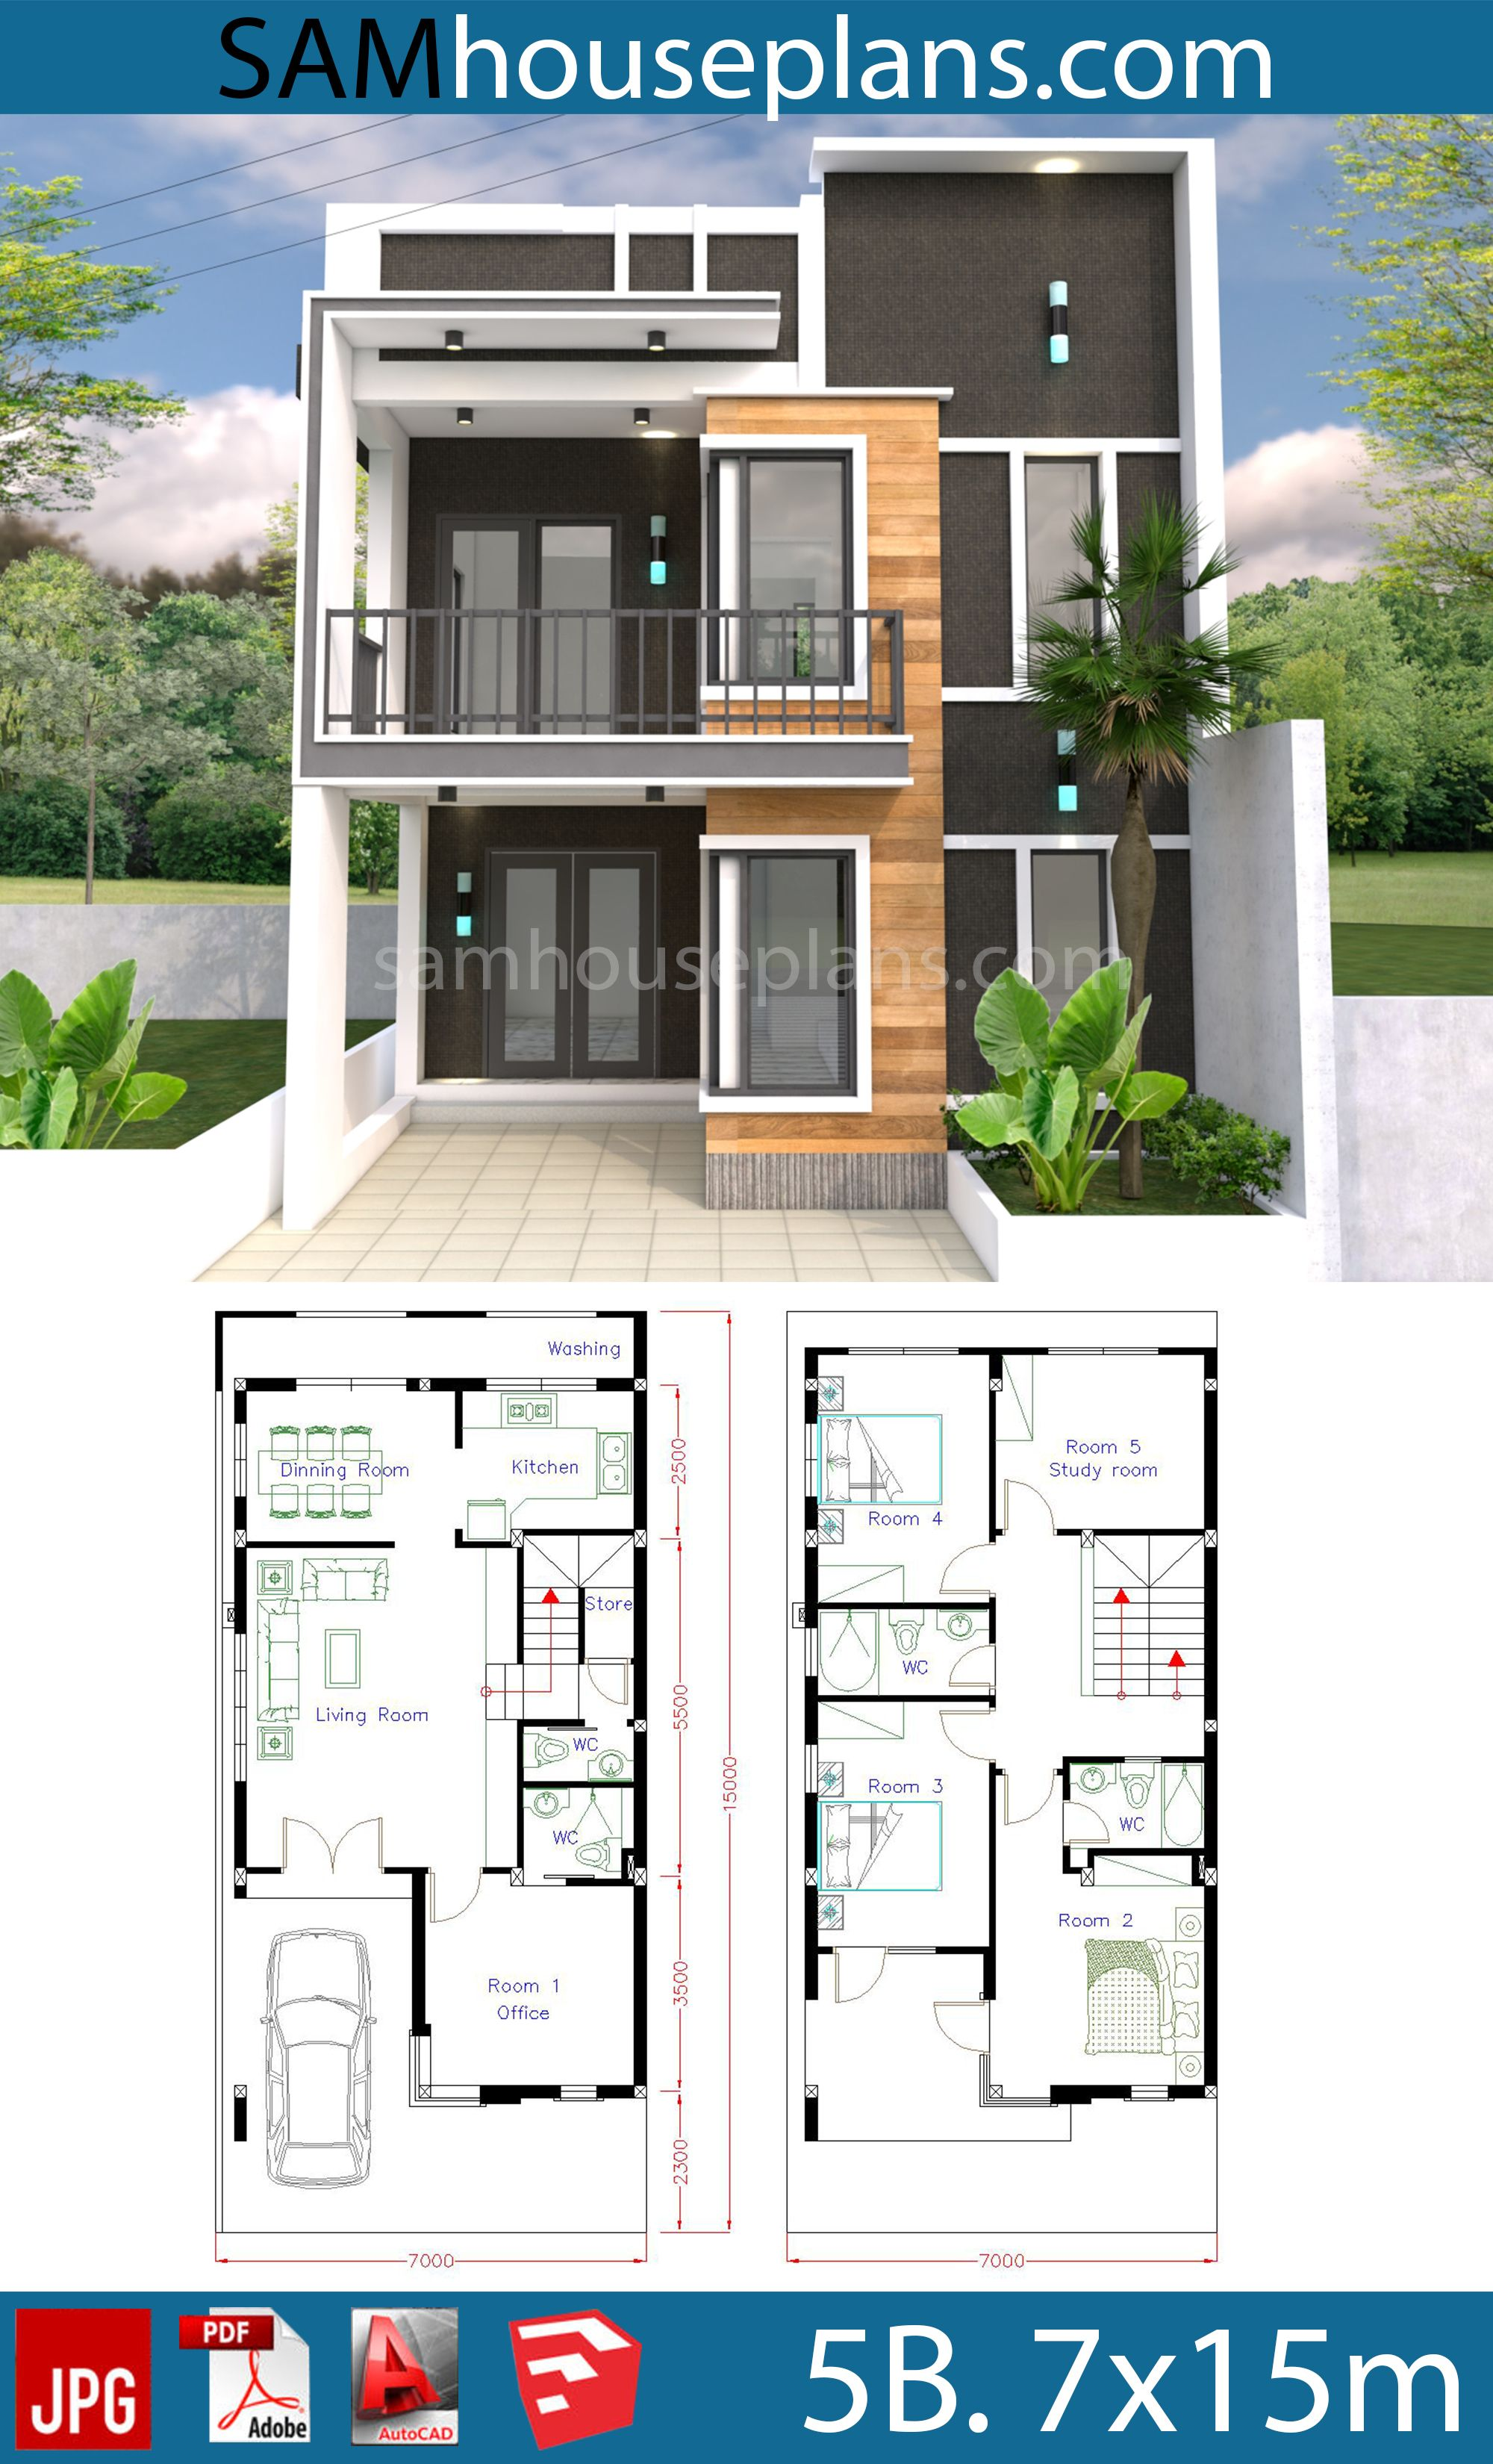 House Plans 7x15m With 4 Bedrooms Model House Plan